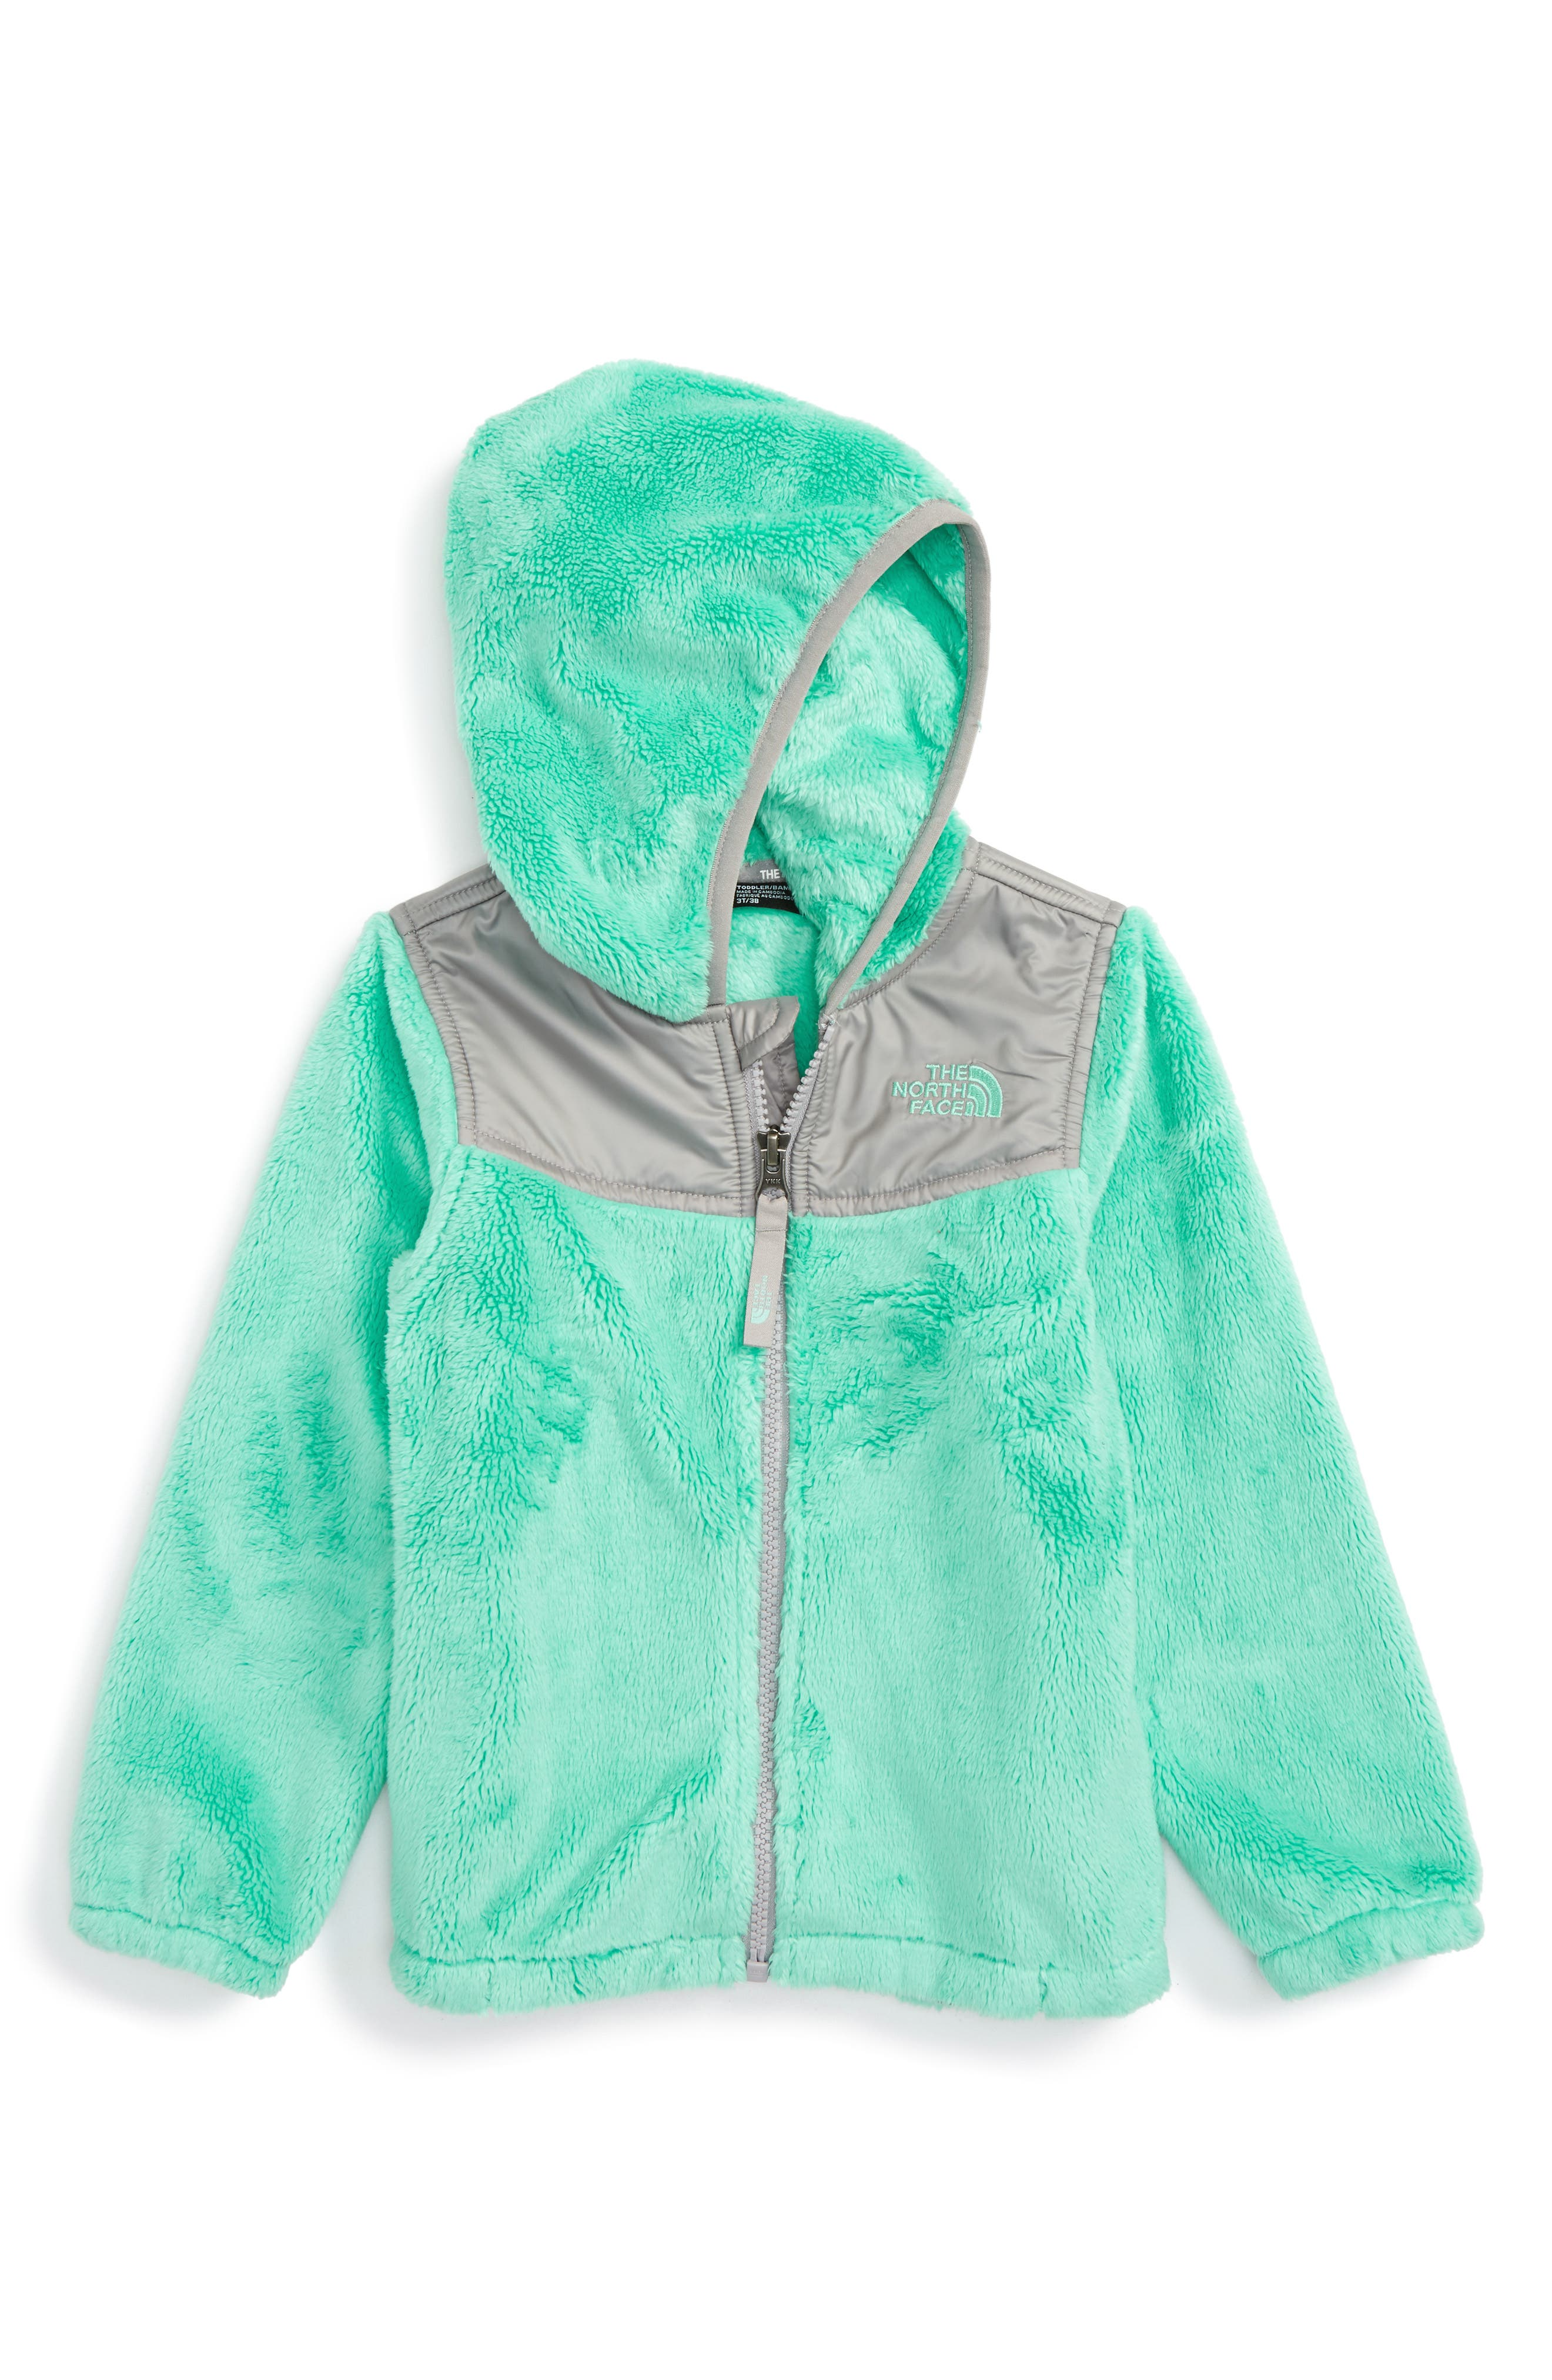 Oso Fleece Hoodie,                             Main thumbnail 1, color,                             310